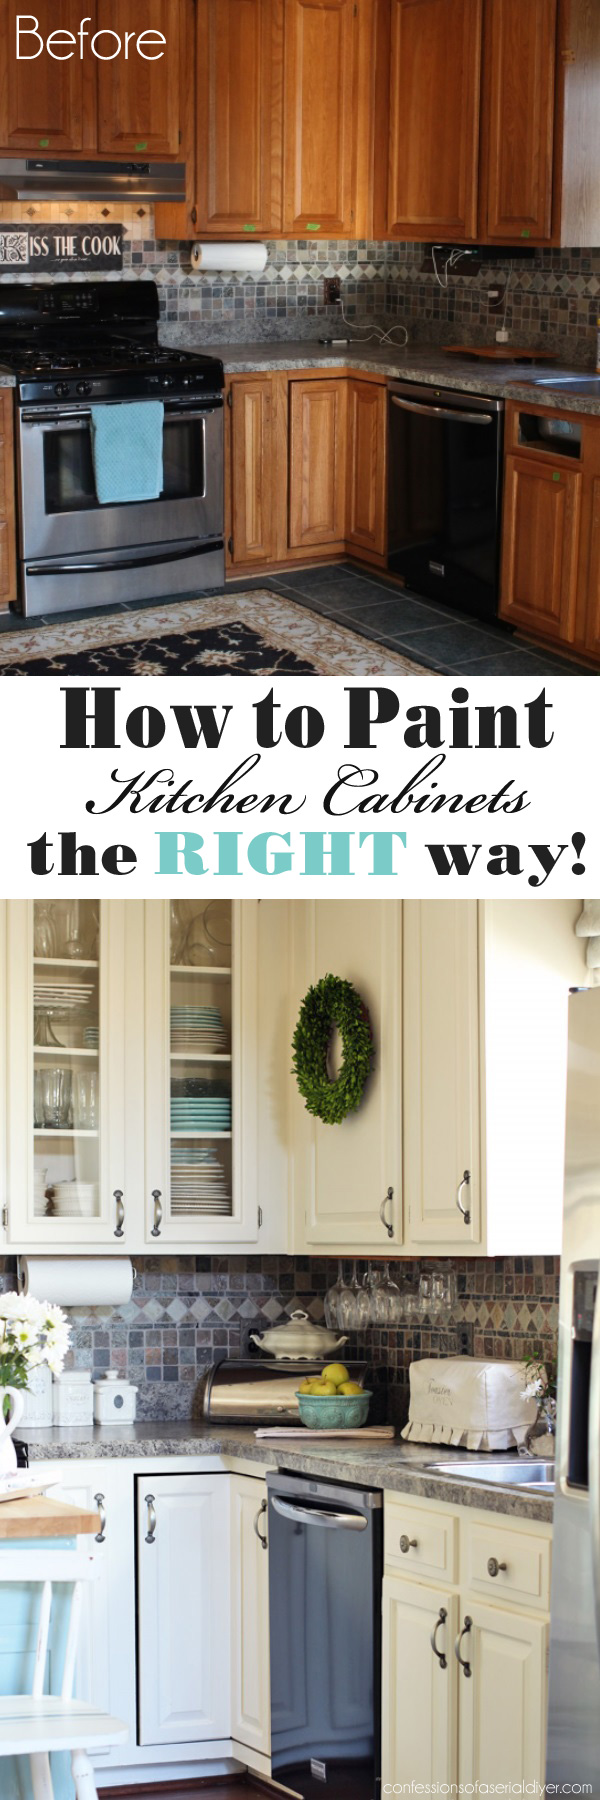 how to paint kitchen cabinets a step by step guide repaint kitchen cabinets How to Paint Kitchen Cabinets the RIGHT way from Confessions of a Serial Do it